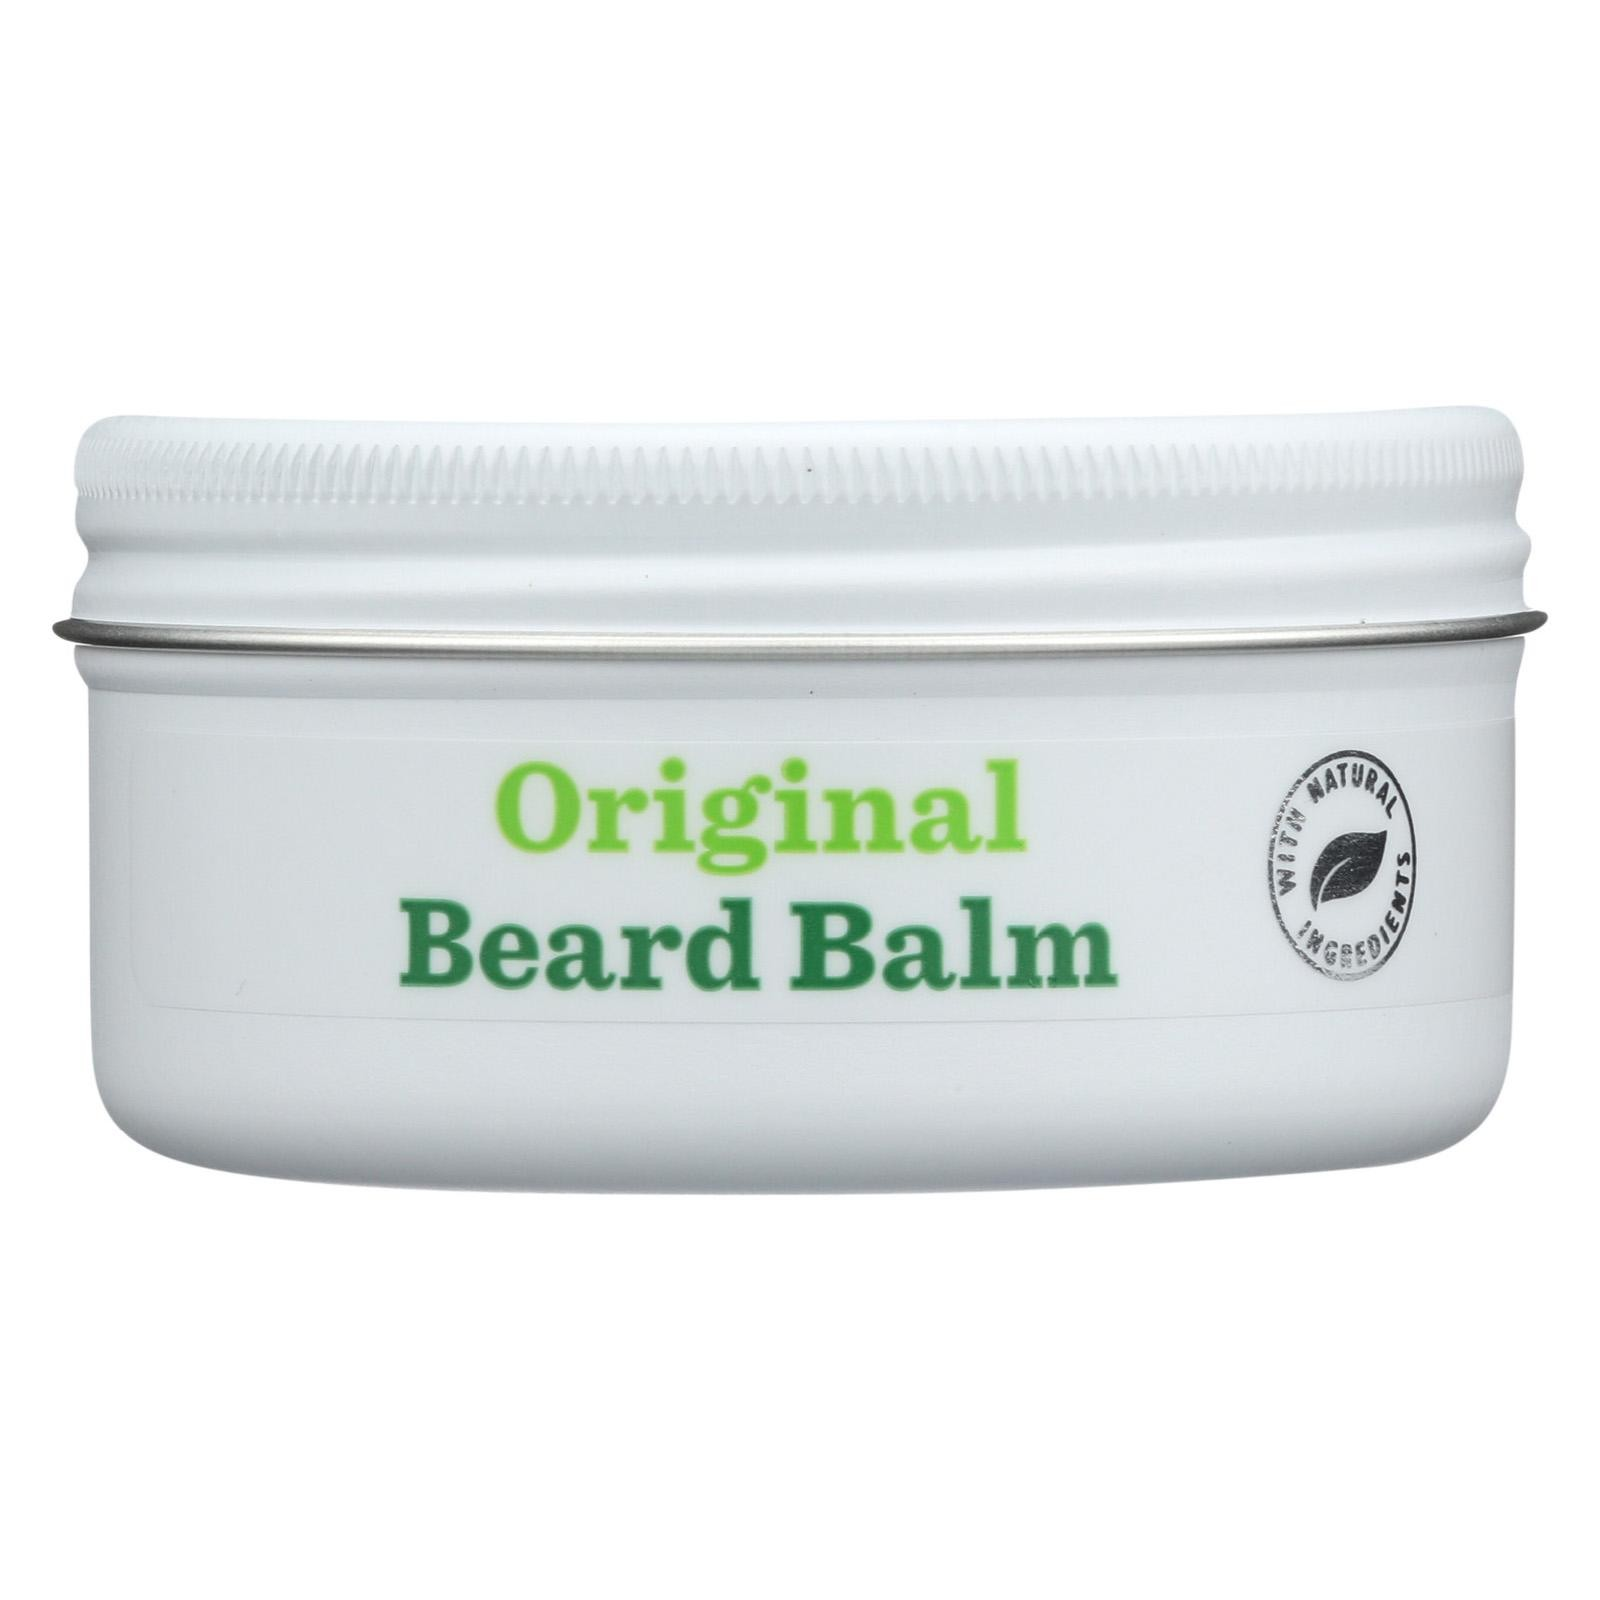 Bulldog Natural Skincare Beard Balm - Original - 2.5 Fl Oz - image 1 of 1